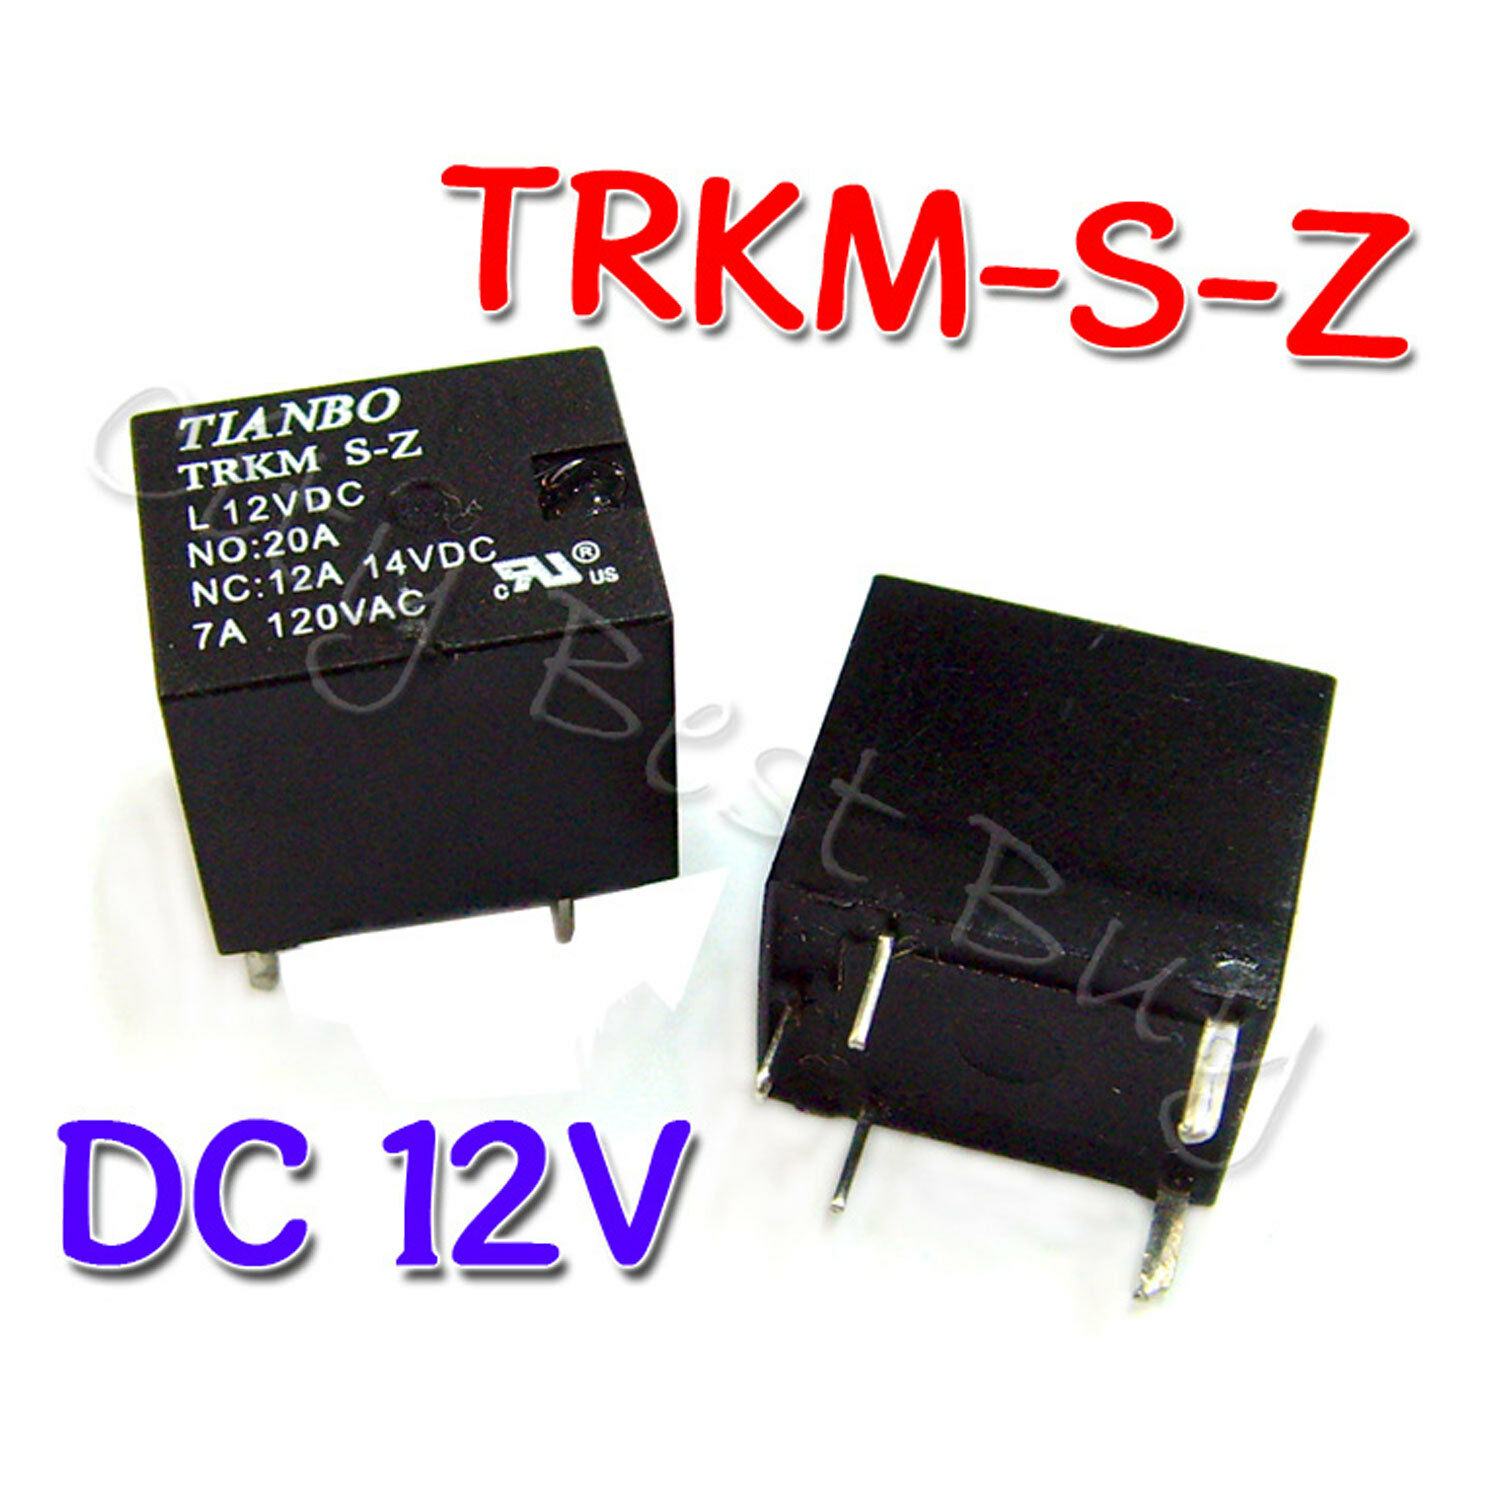 2 X Trkm S Z L 12vdc 12v Utv6 7a 120vac 5 Pins Coil Spdt Pcb Power Dpdt 30a General Purpose Relay Circuit Diagram Norton Secured Powered By Verisign